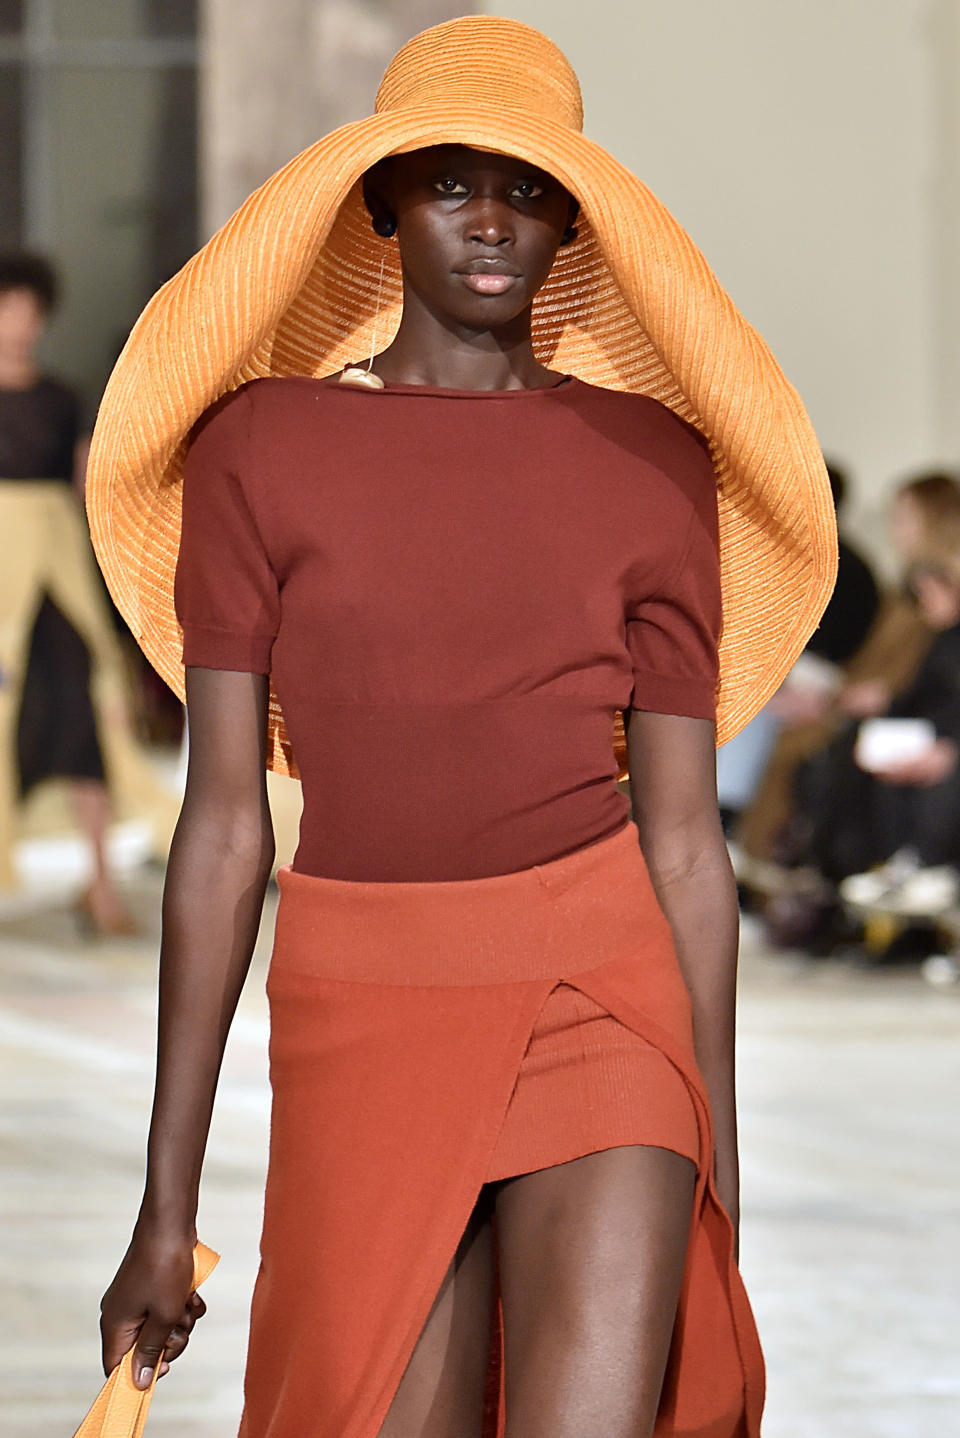 A model walks the runway during the Jacquemus Ready-to-Wear Fall/Winter 2018-2019 fashion show during Paris Fashion Week Womenswear Fall/Winter 2018/2019 on February 26, 2018 in Paris, France. (Photo: Victor VIRGILE/Gamma-Rapho via Getty Images)